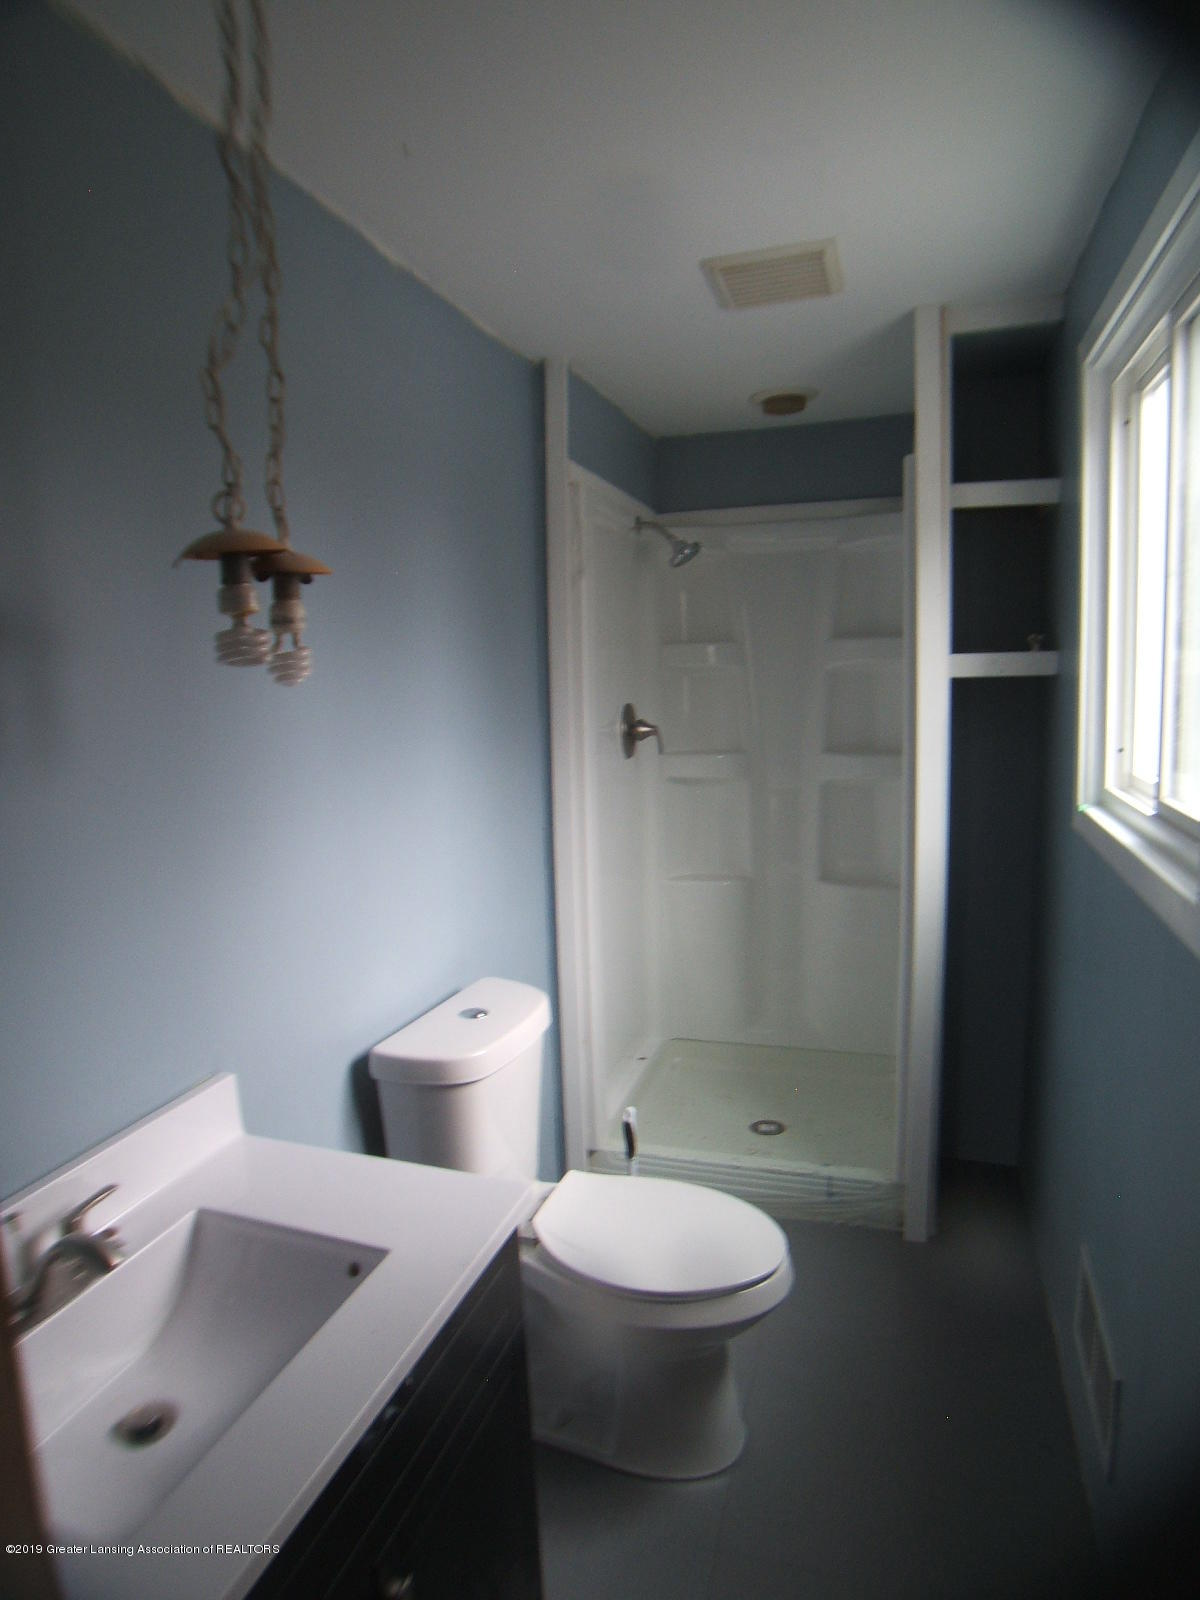 1002 Touraine Ave - Master Bath - Copy - 16